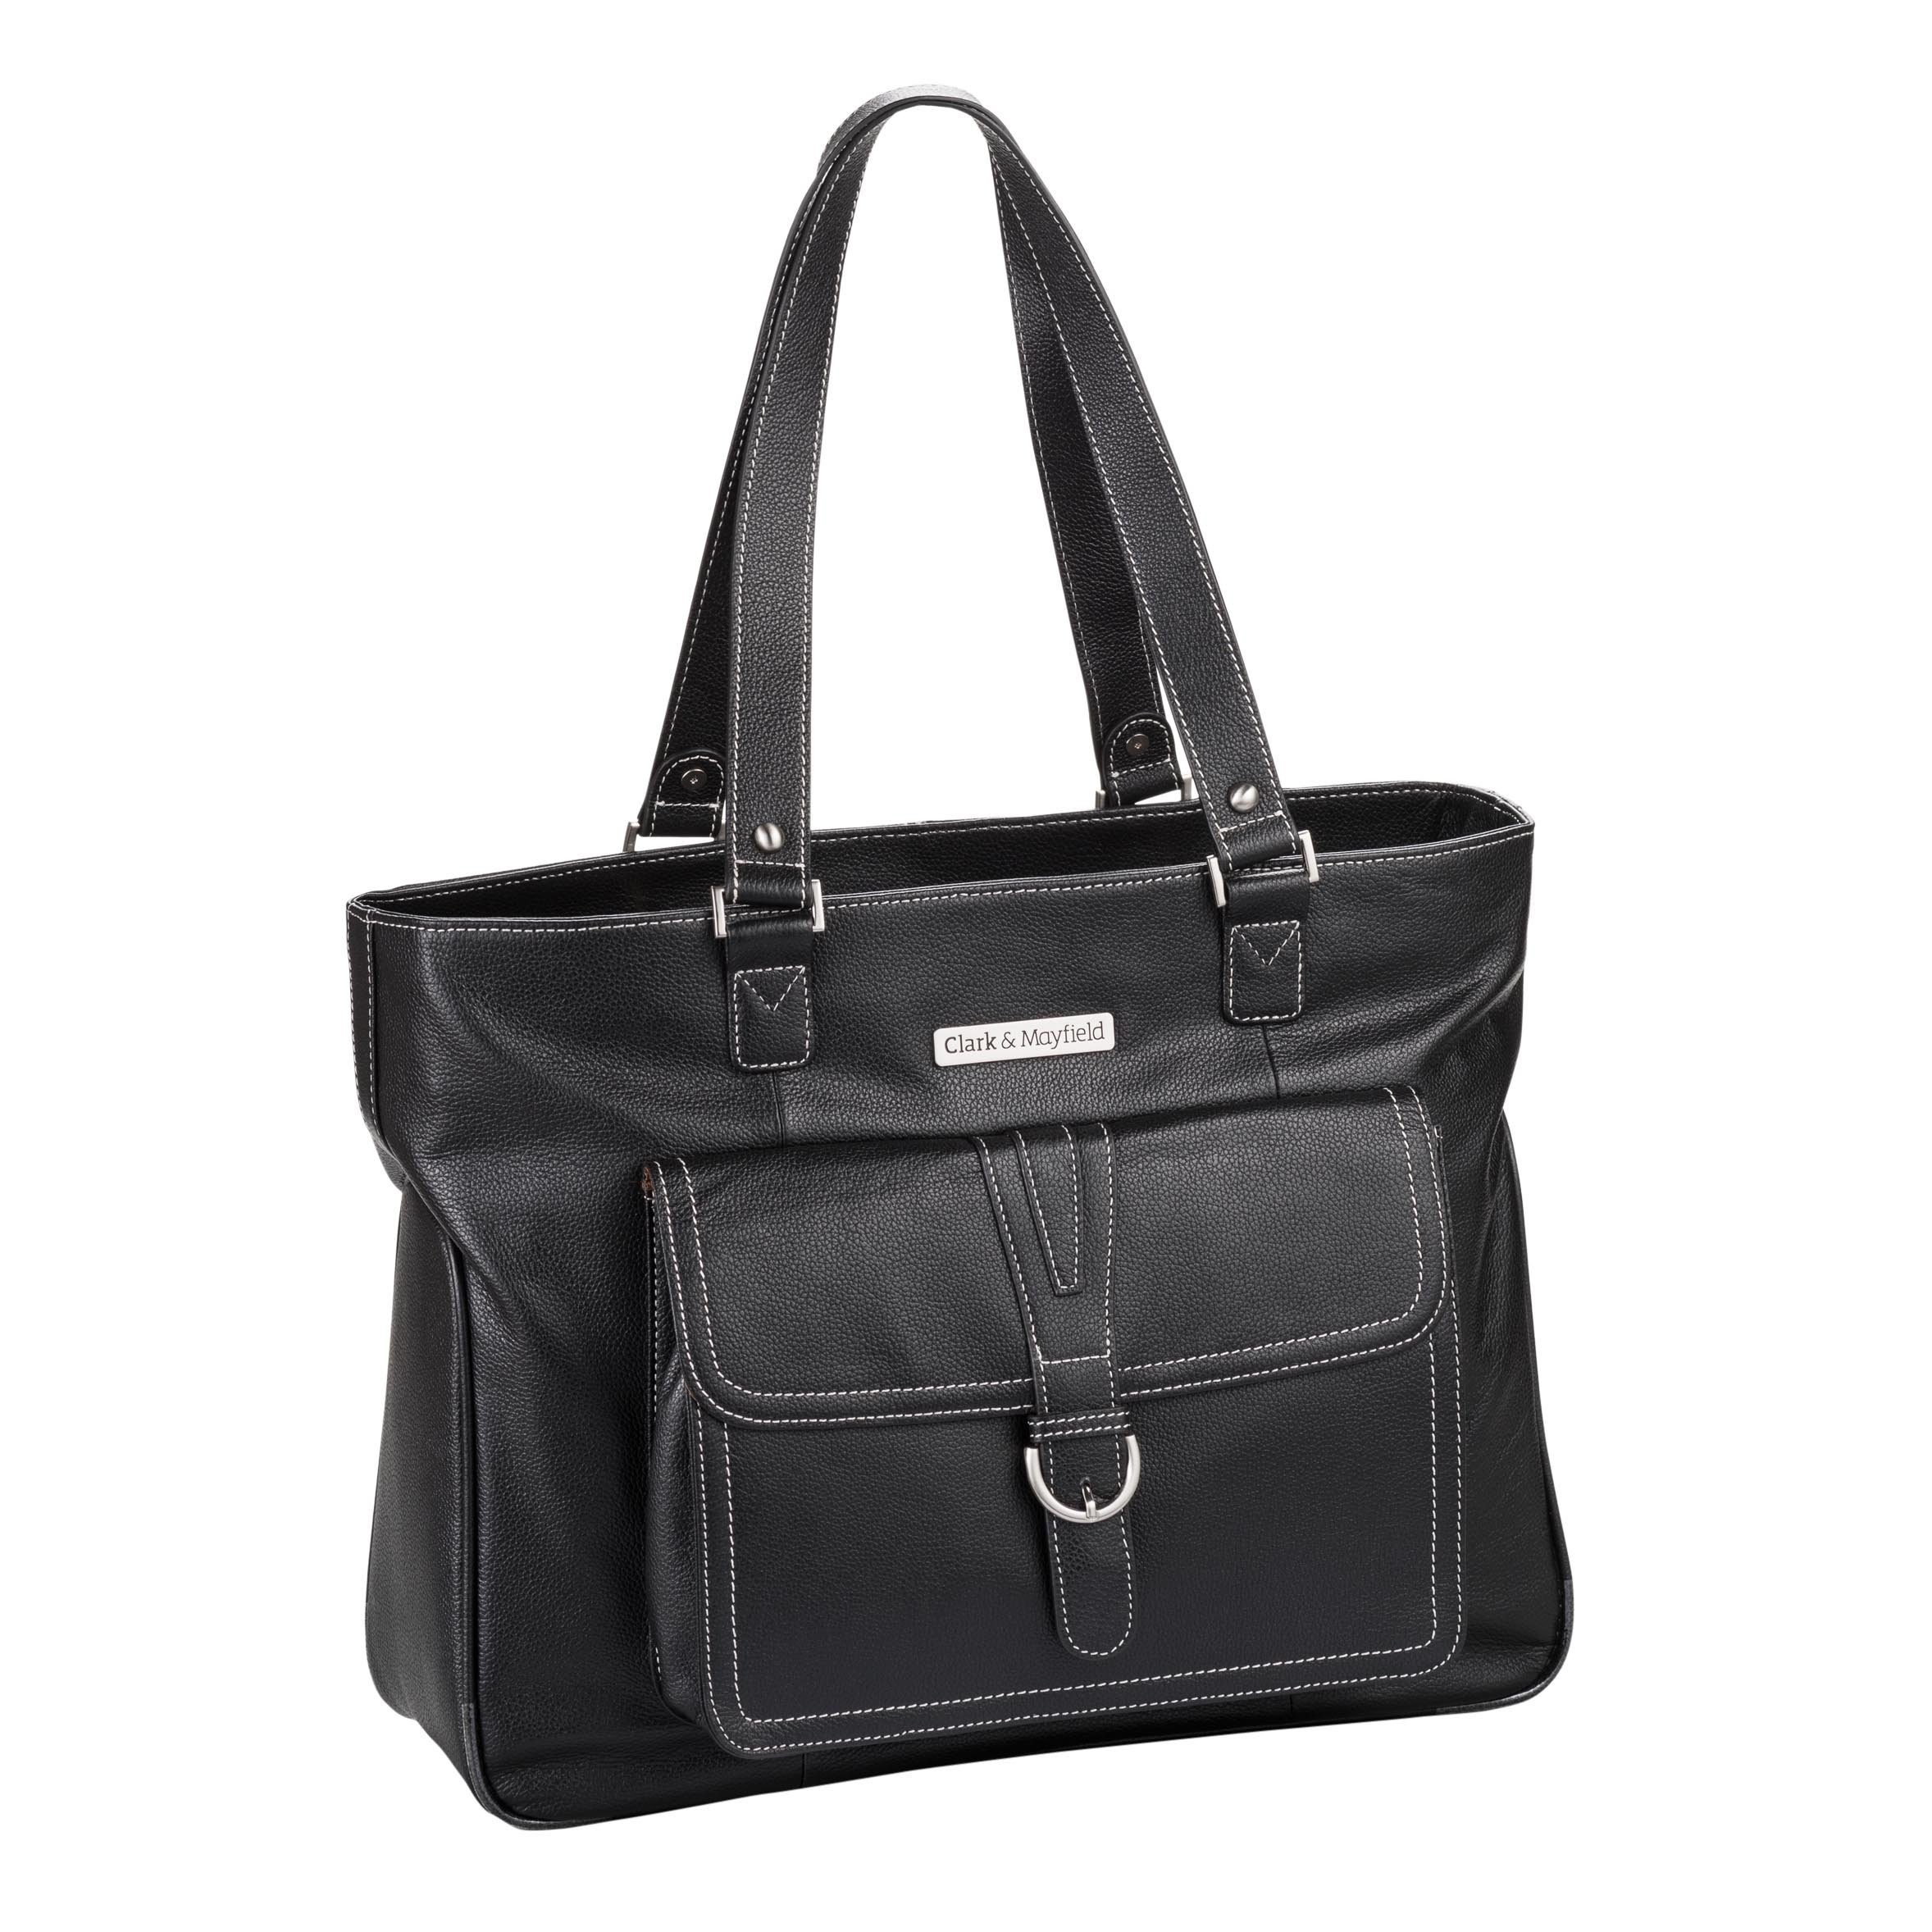 Clark & Mayfield Stafford Pro Leather Laptop Tote 17.3'' (Black)